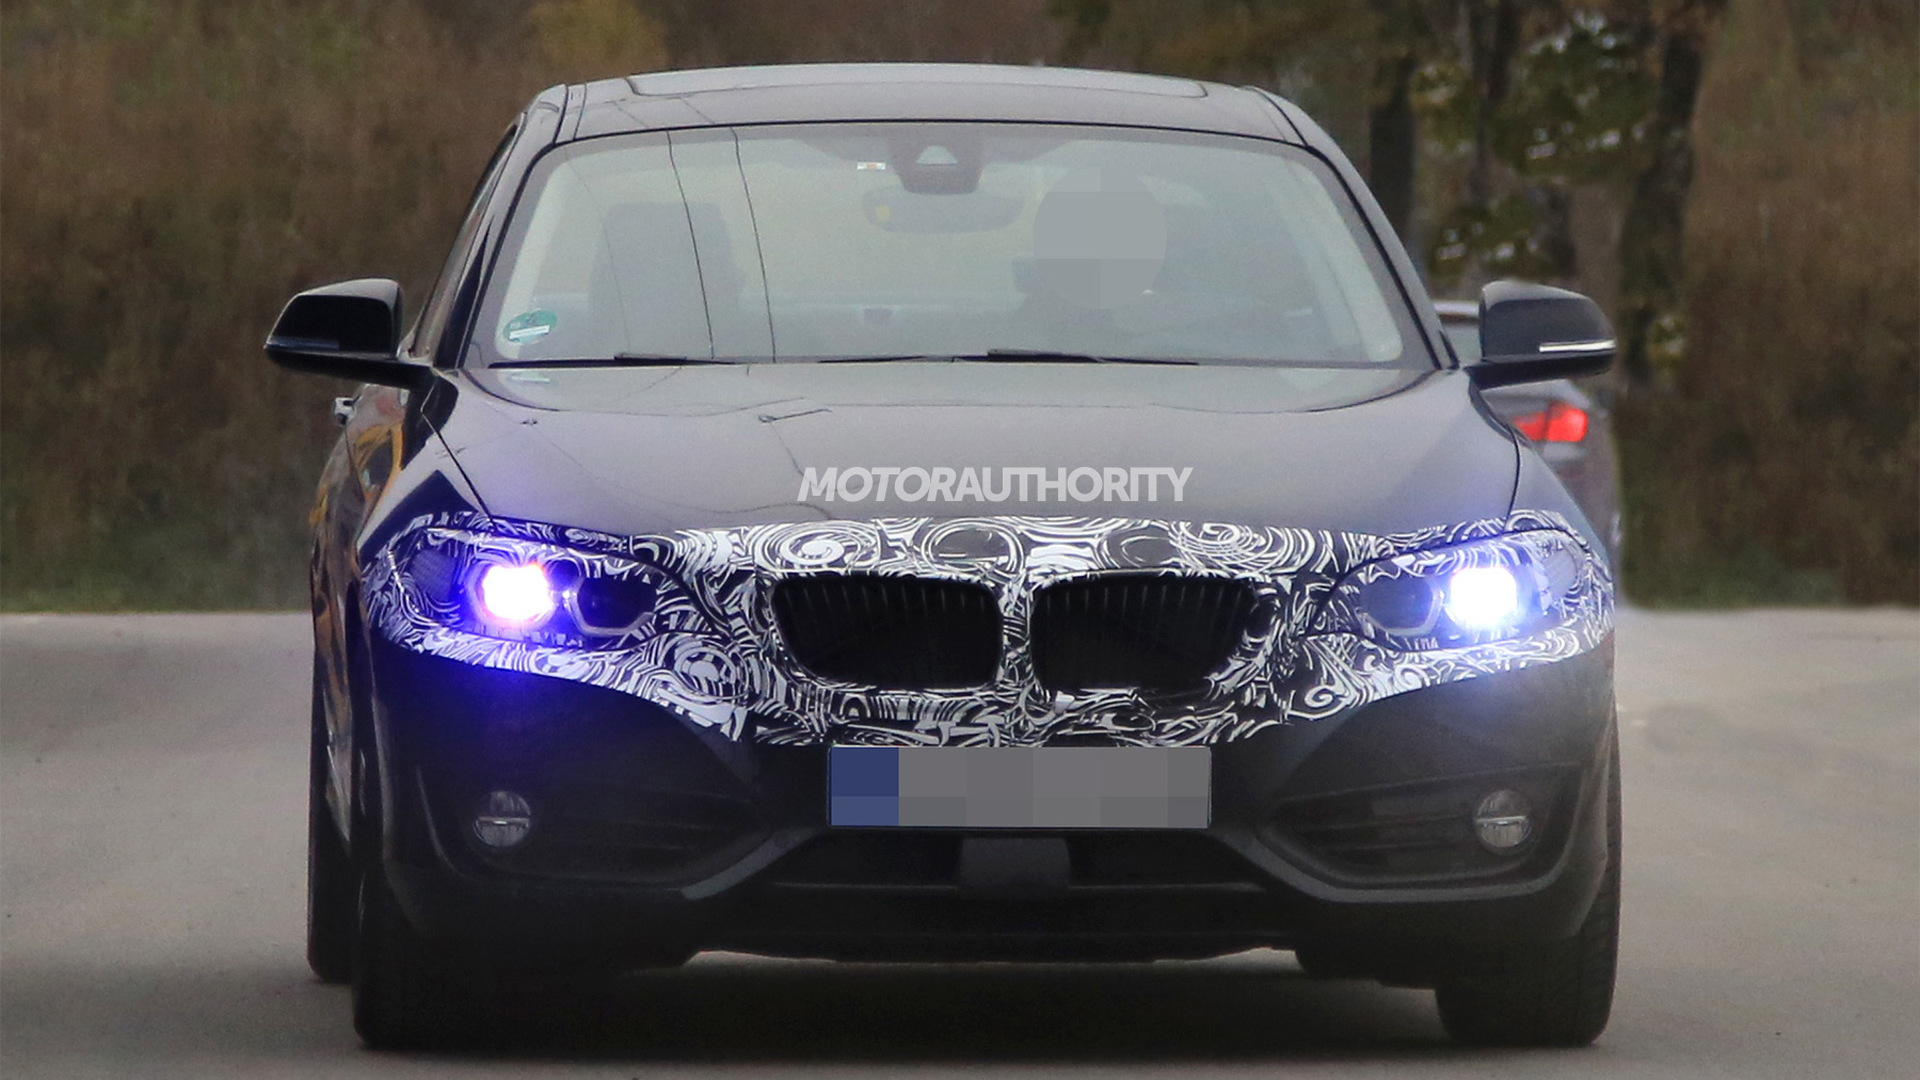 2018 BMW 2-Series facelift spy shots - Image via S. Baldauf/SB-Medien